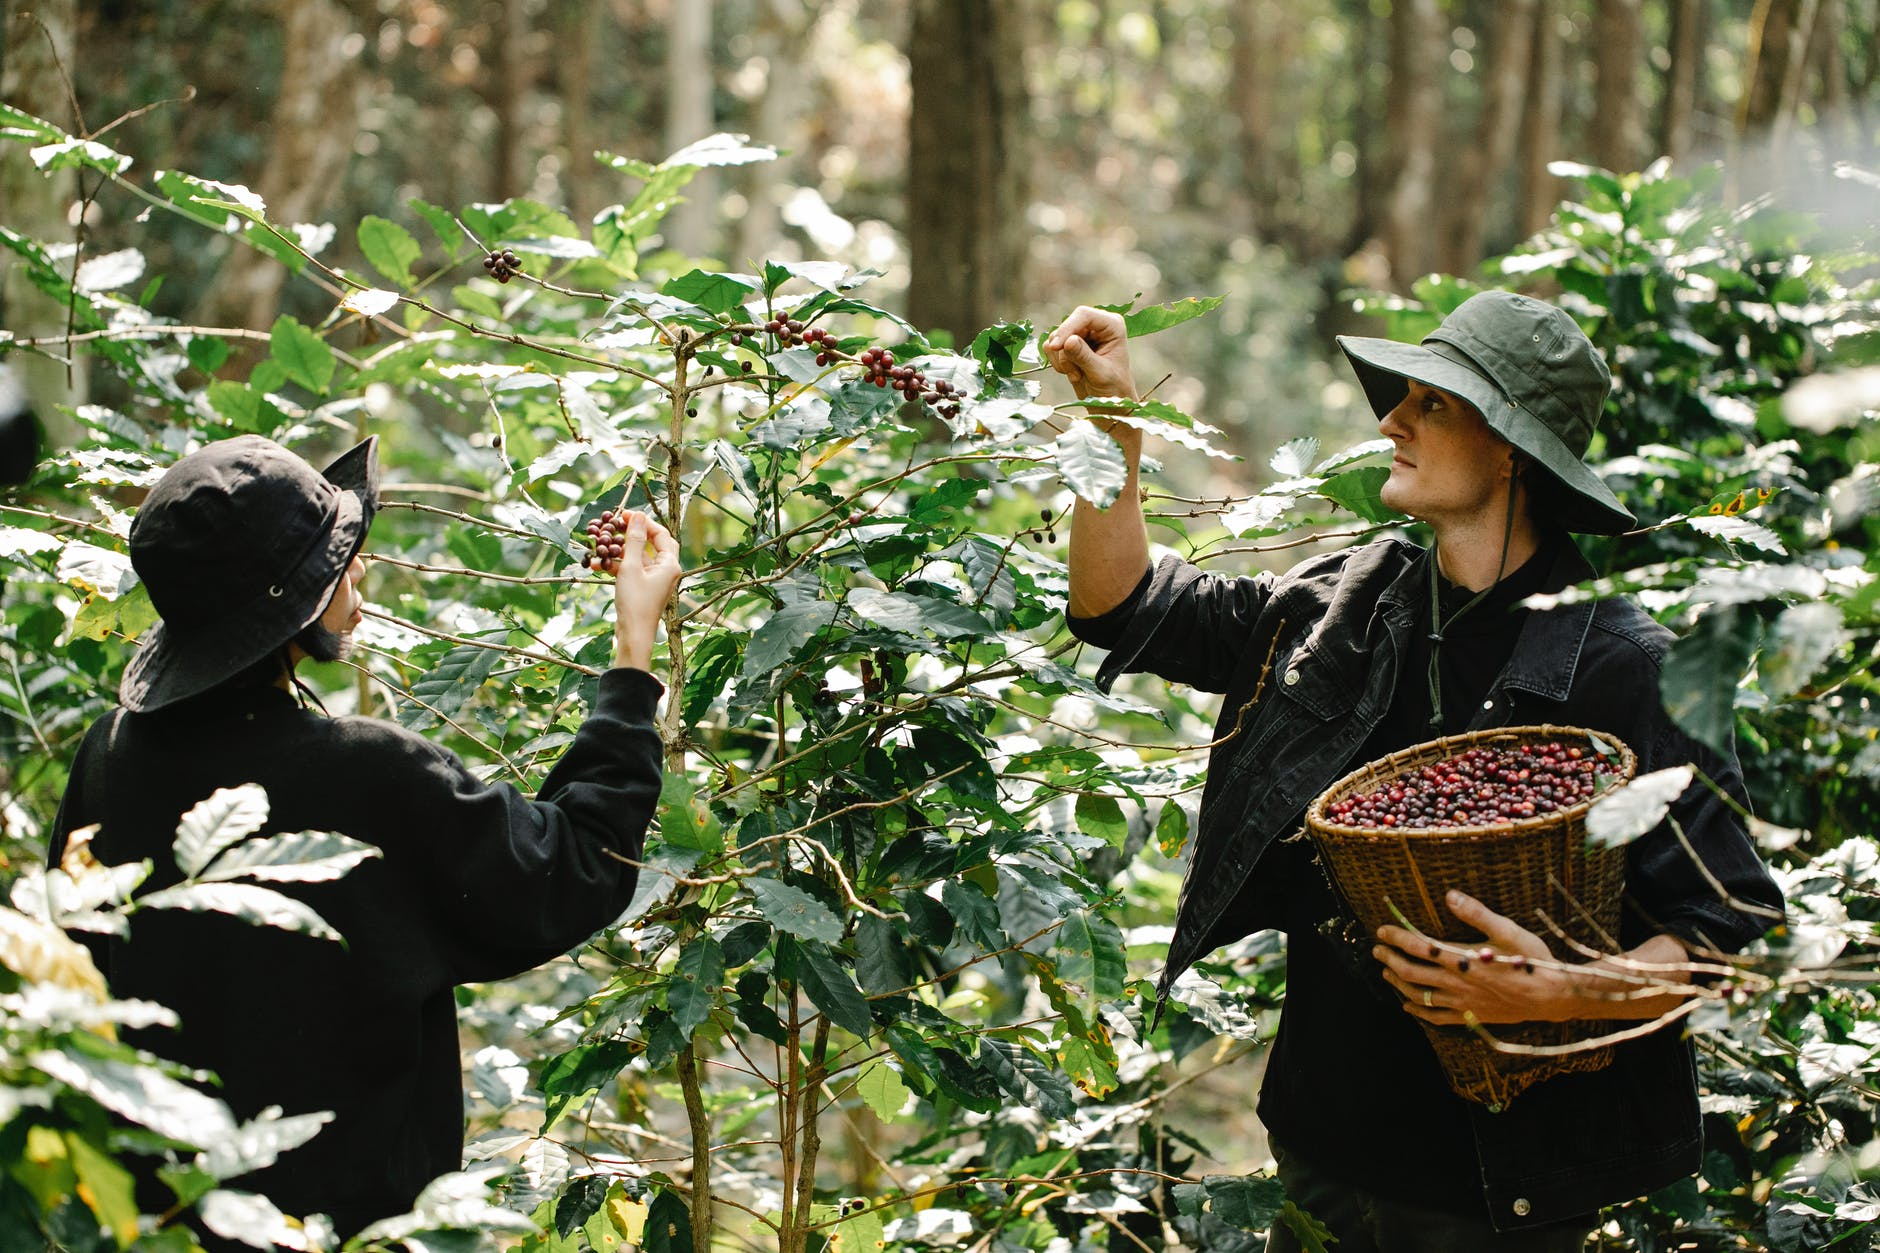 young diverse gardeners harvesting coffee beans in lush green garden